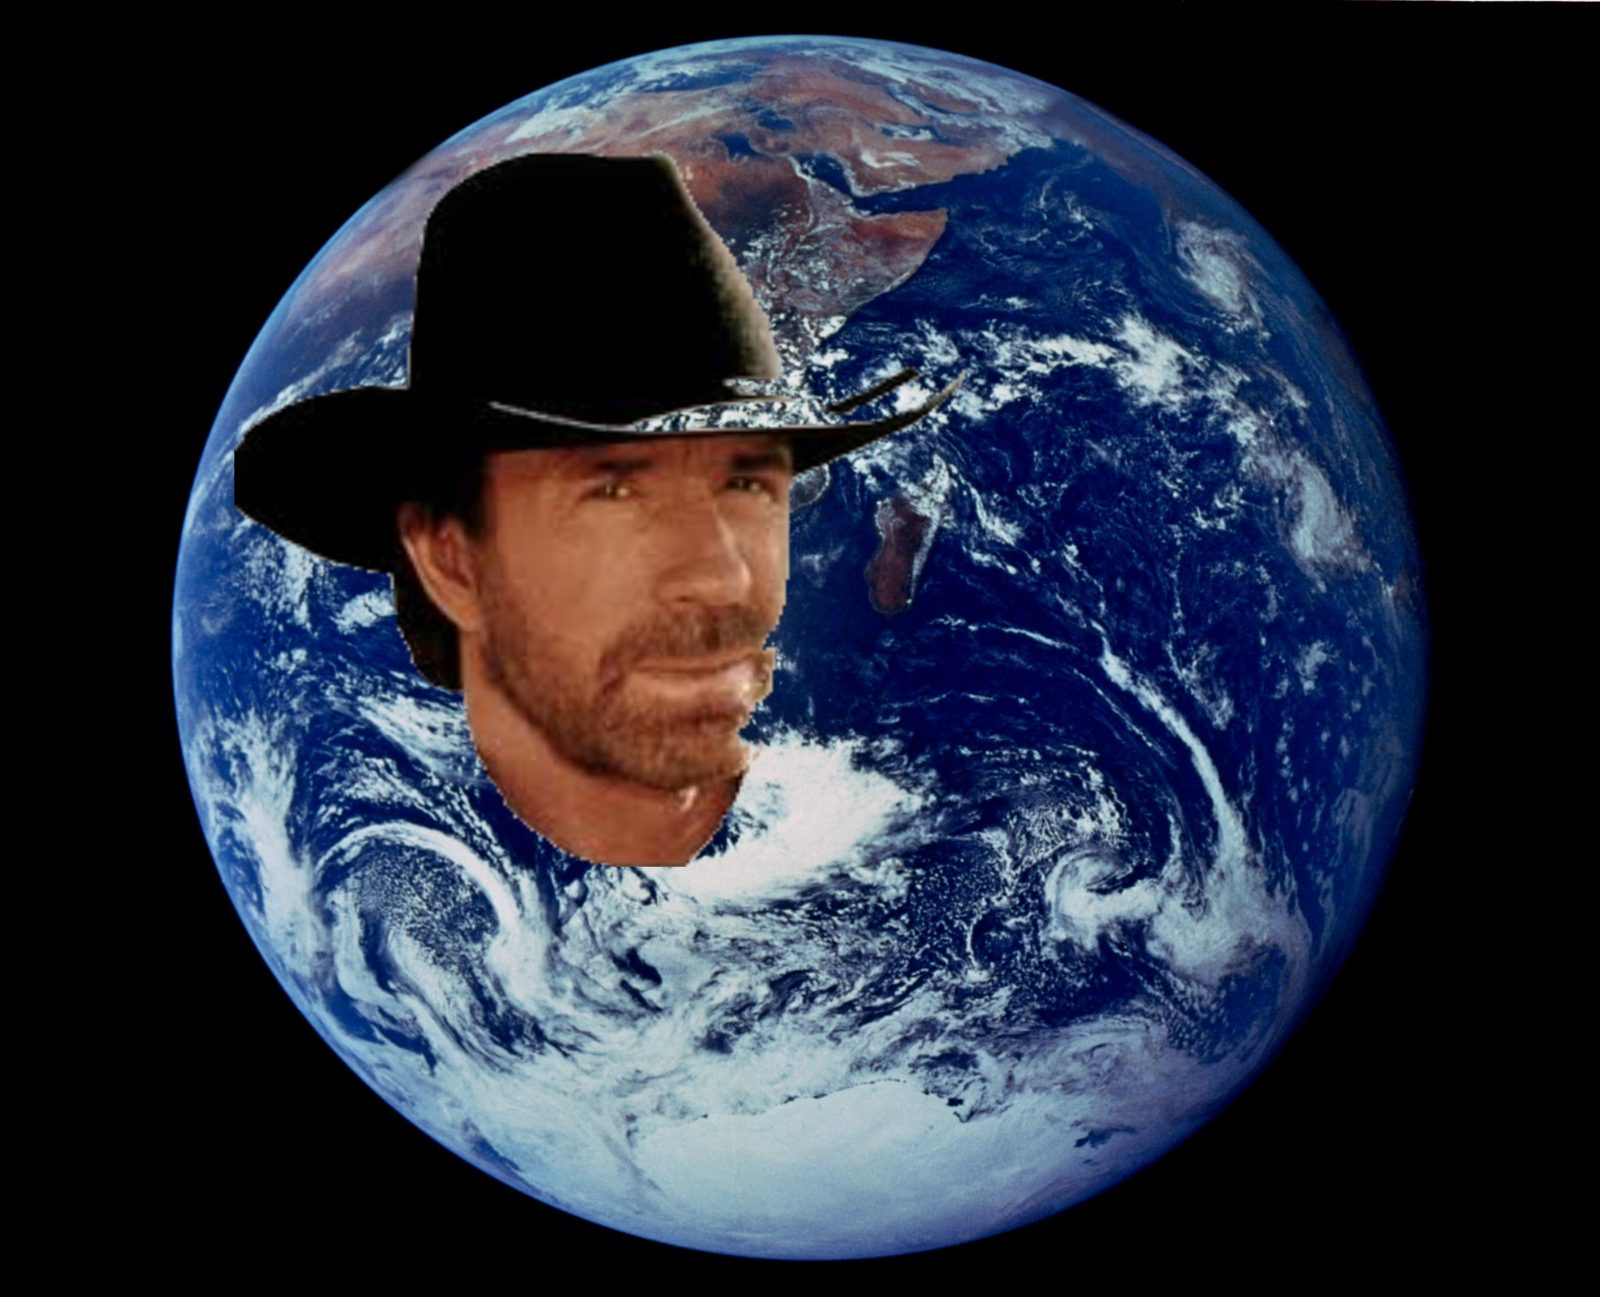 Chuck Norris Saves the World